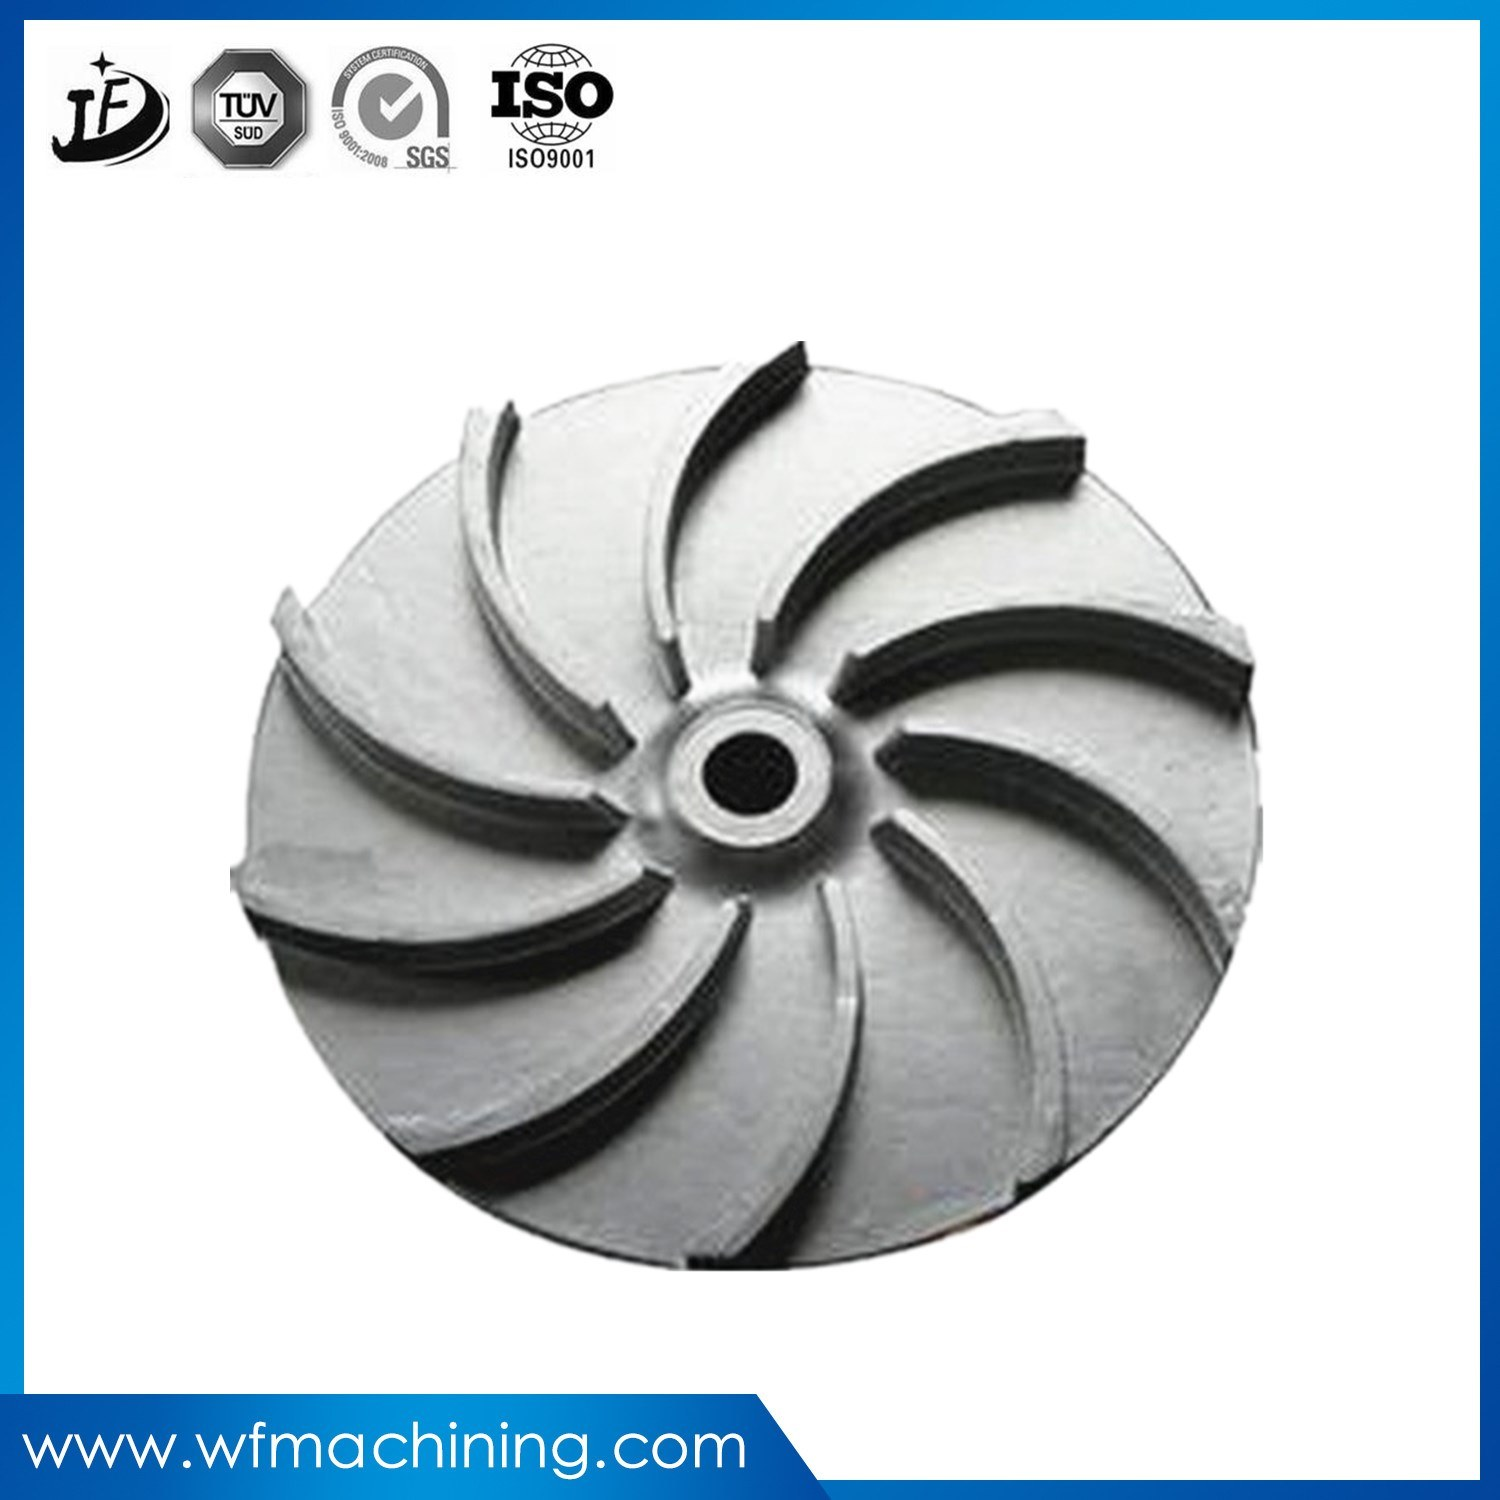 Investment Casting Precision Pump Impeller with Metal Processing and Machining